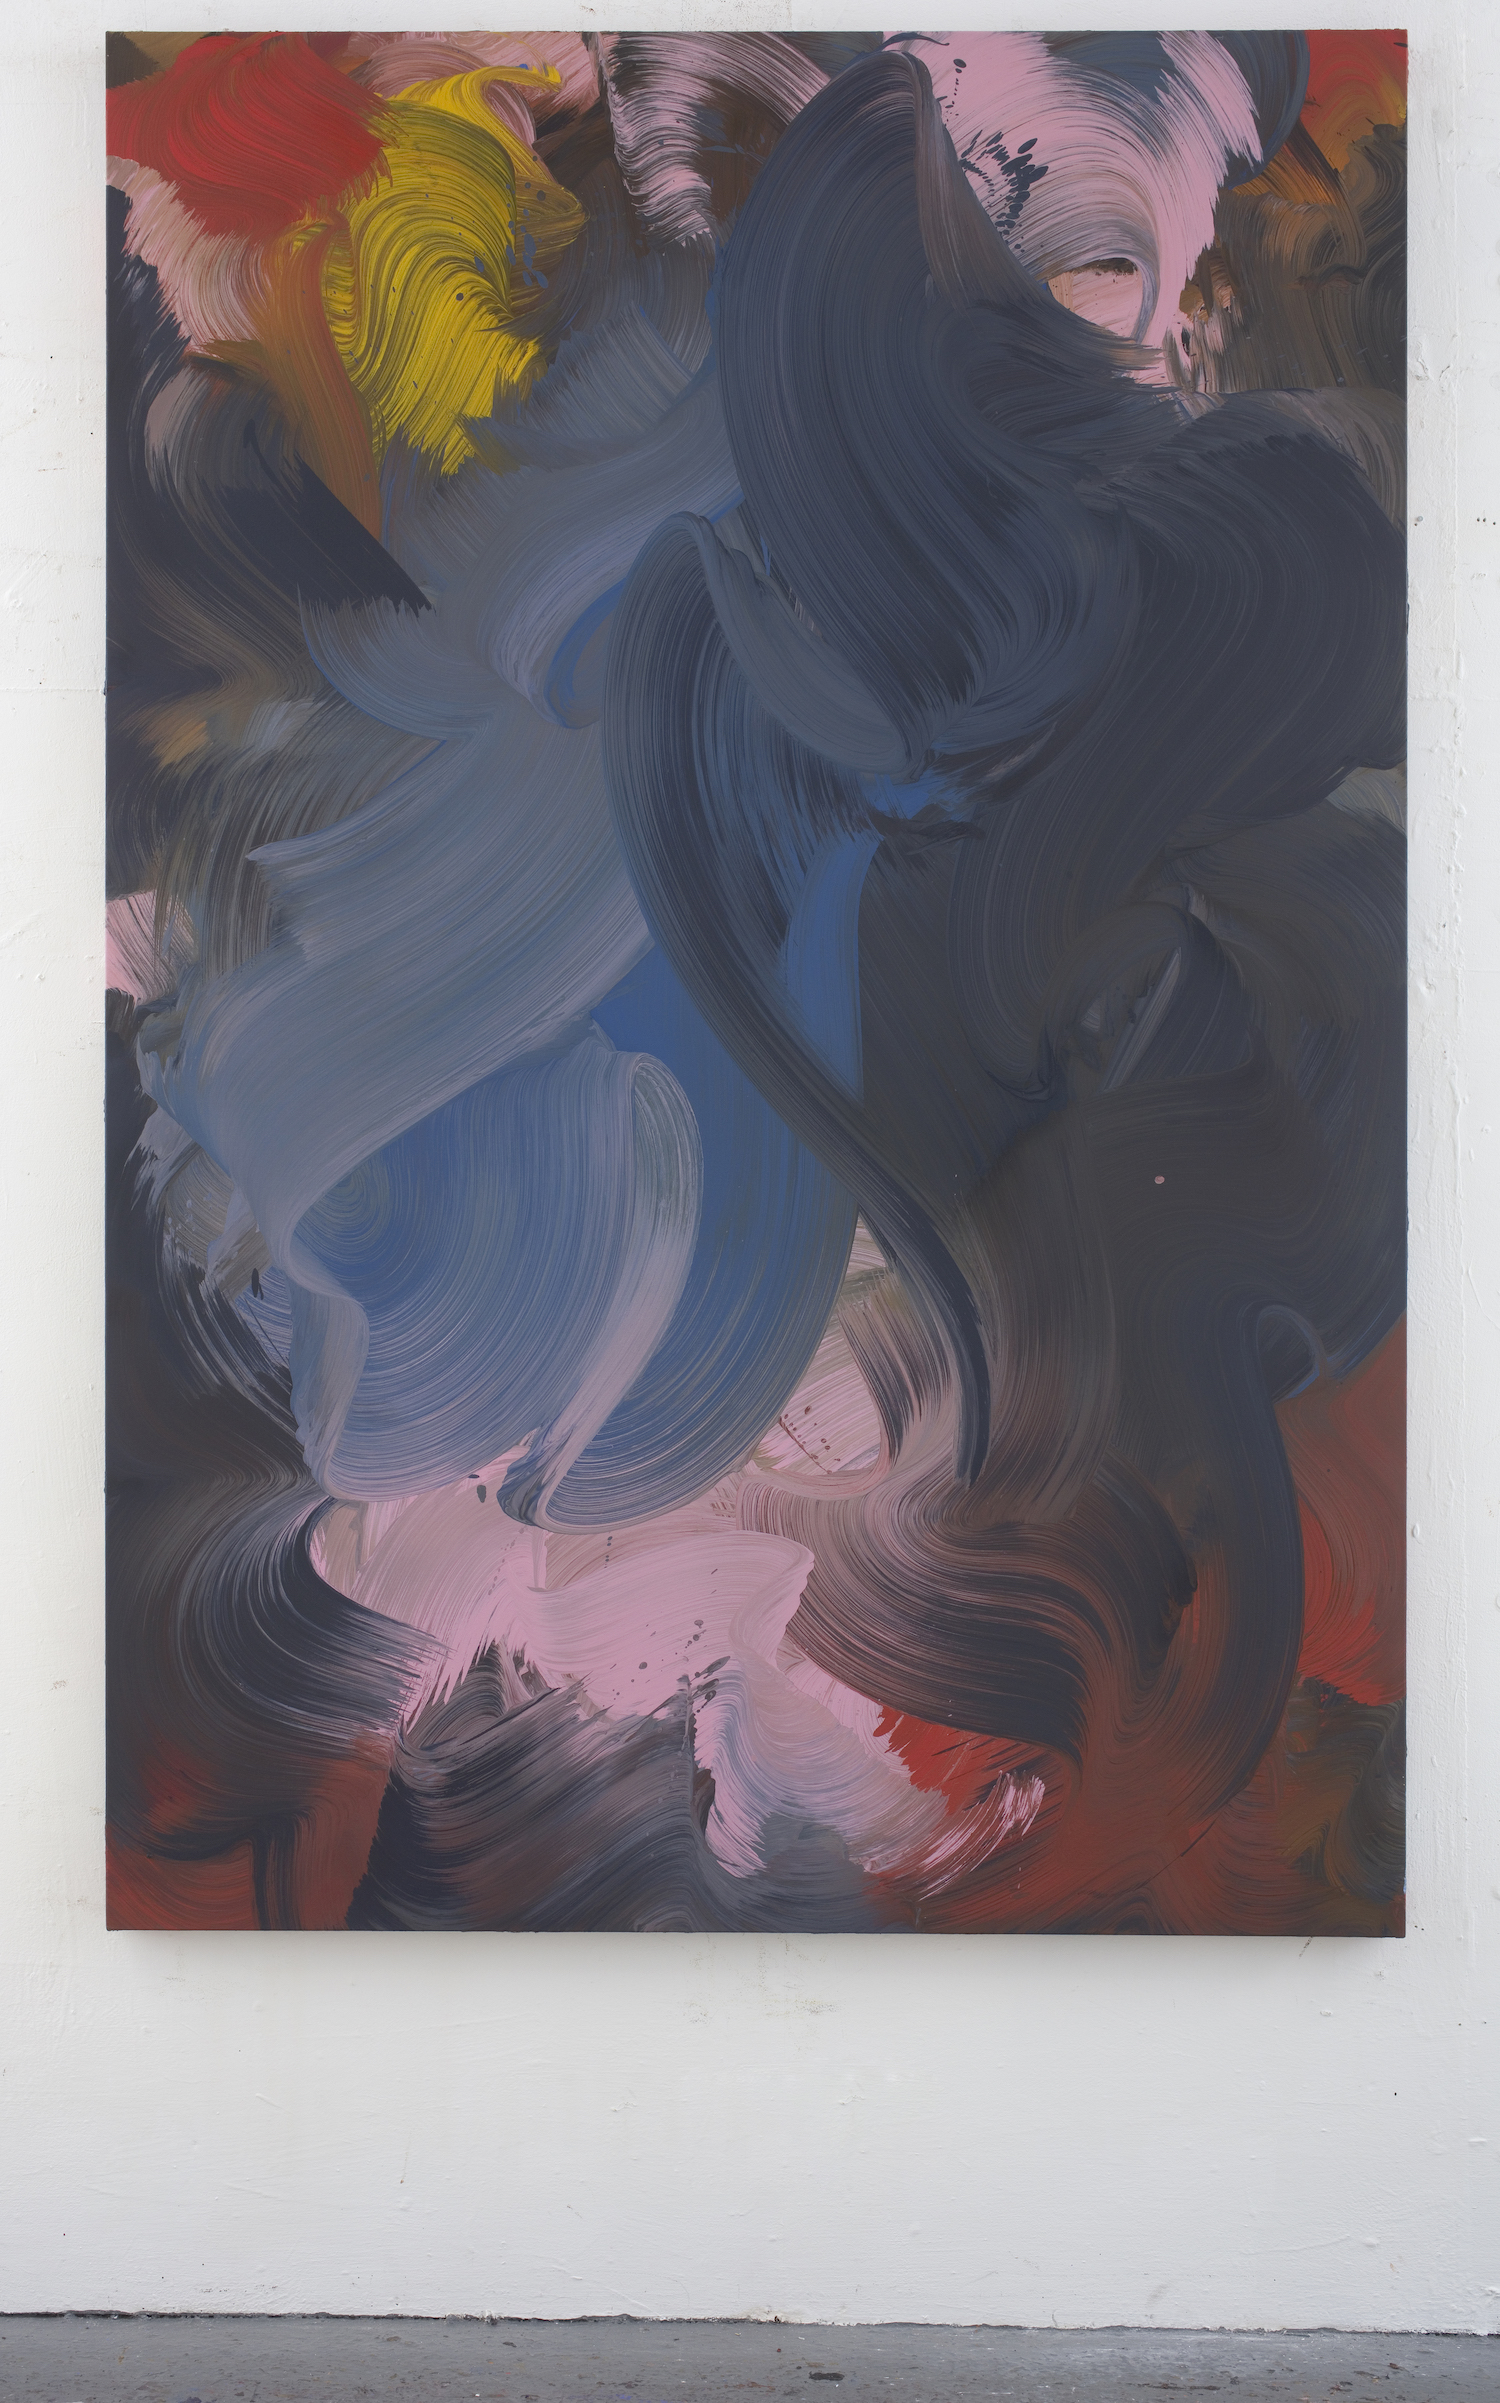 Erin Lawlor, 'earthly delights', 2020, 190x130cm